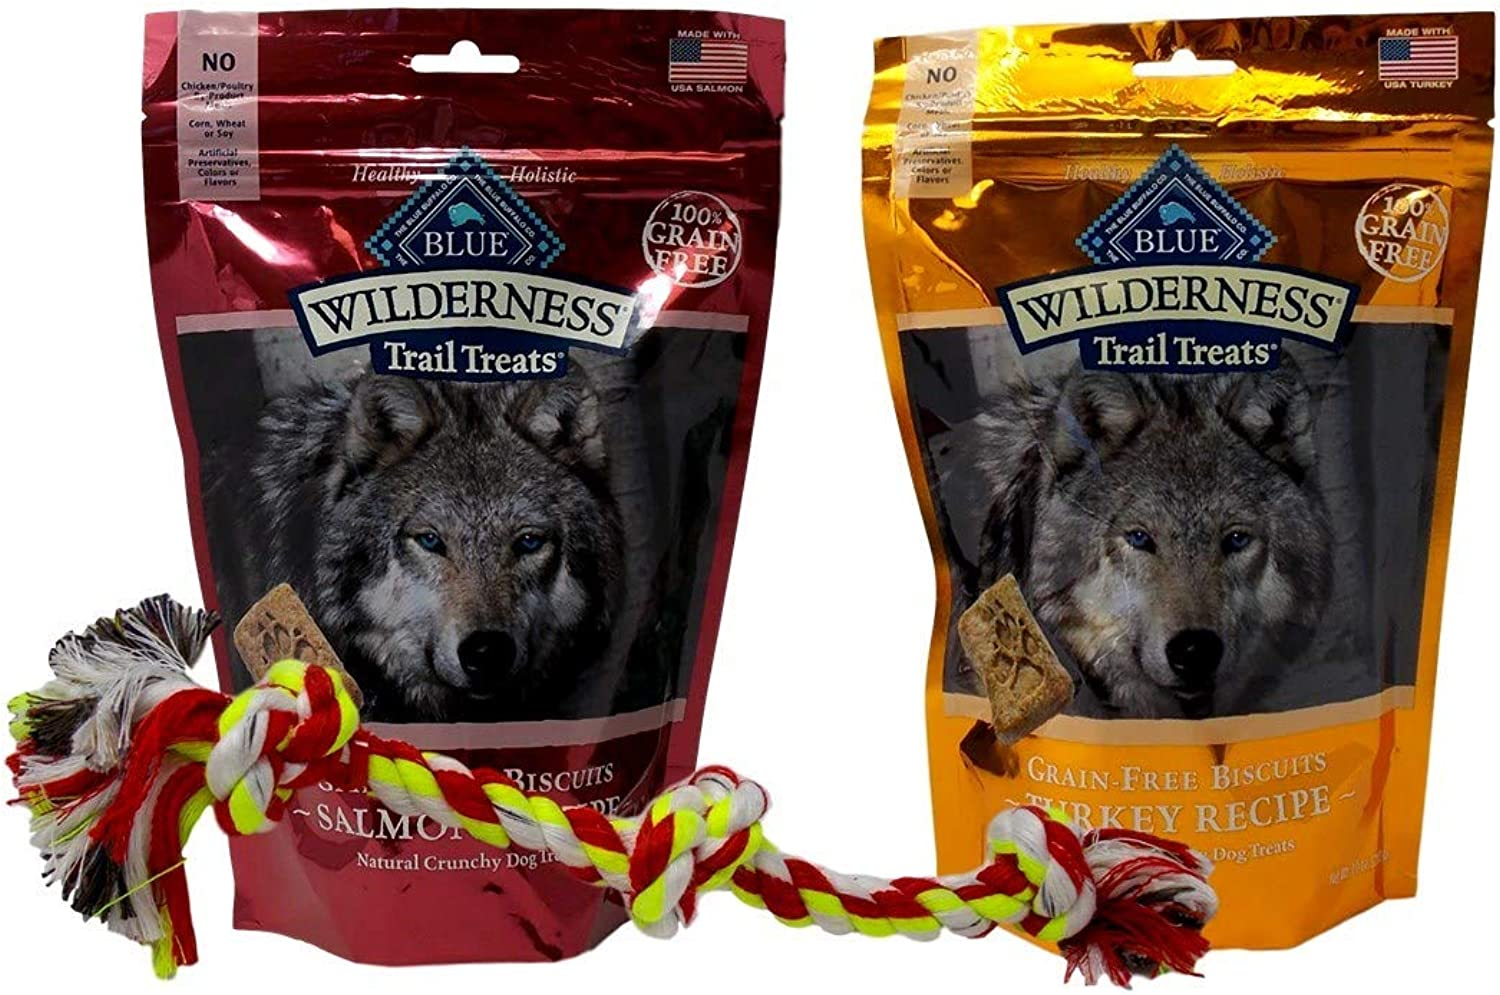 bluee Buffalo Wilderness Trail Treats GrainFree Dog Biscuits 2 Flavor with Toy Bundle  (1) Turkey, and (1) Salmon, 10 Ounces